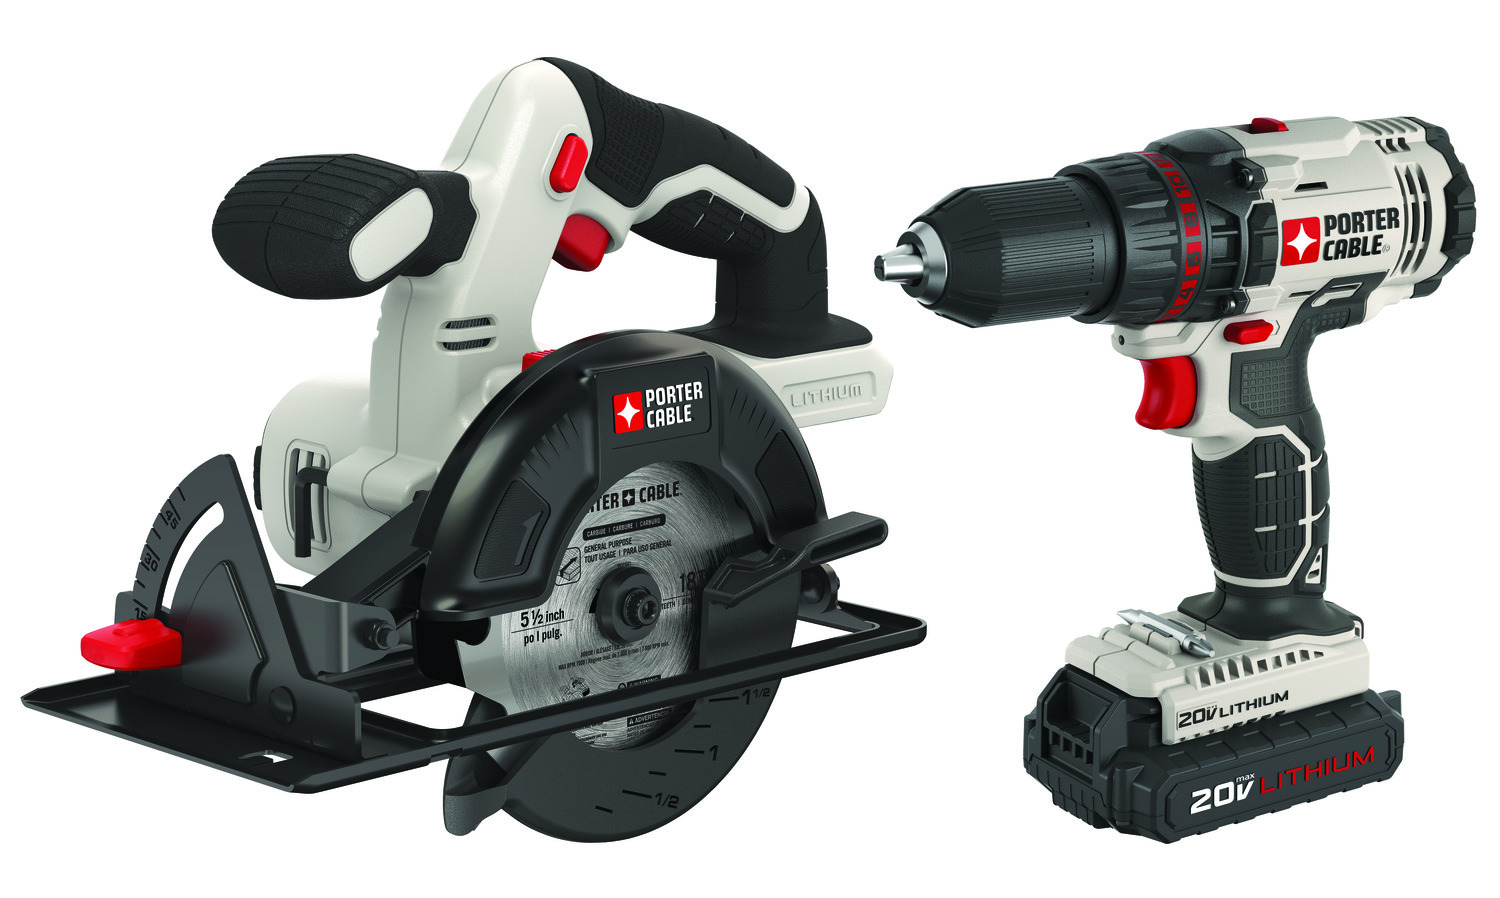 PORTER-CABLE 20-Volt Max 1//2-in Cordless Drill with Charger and 2 Batteries